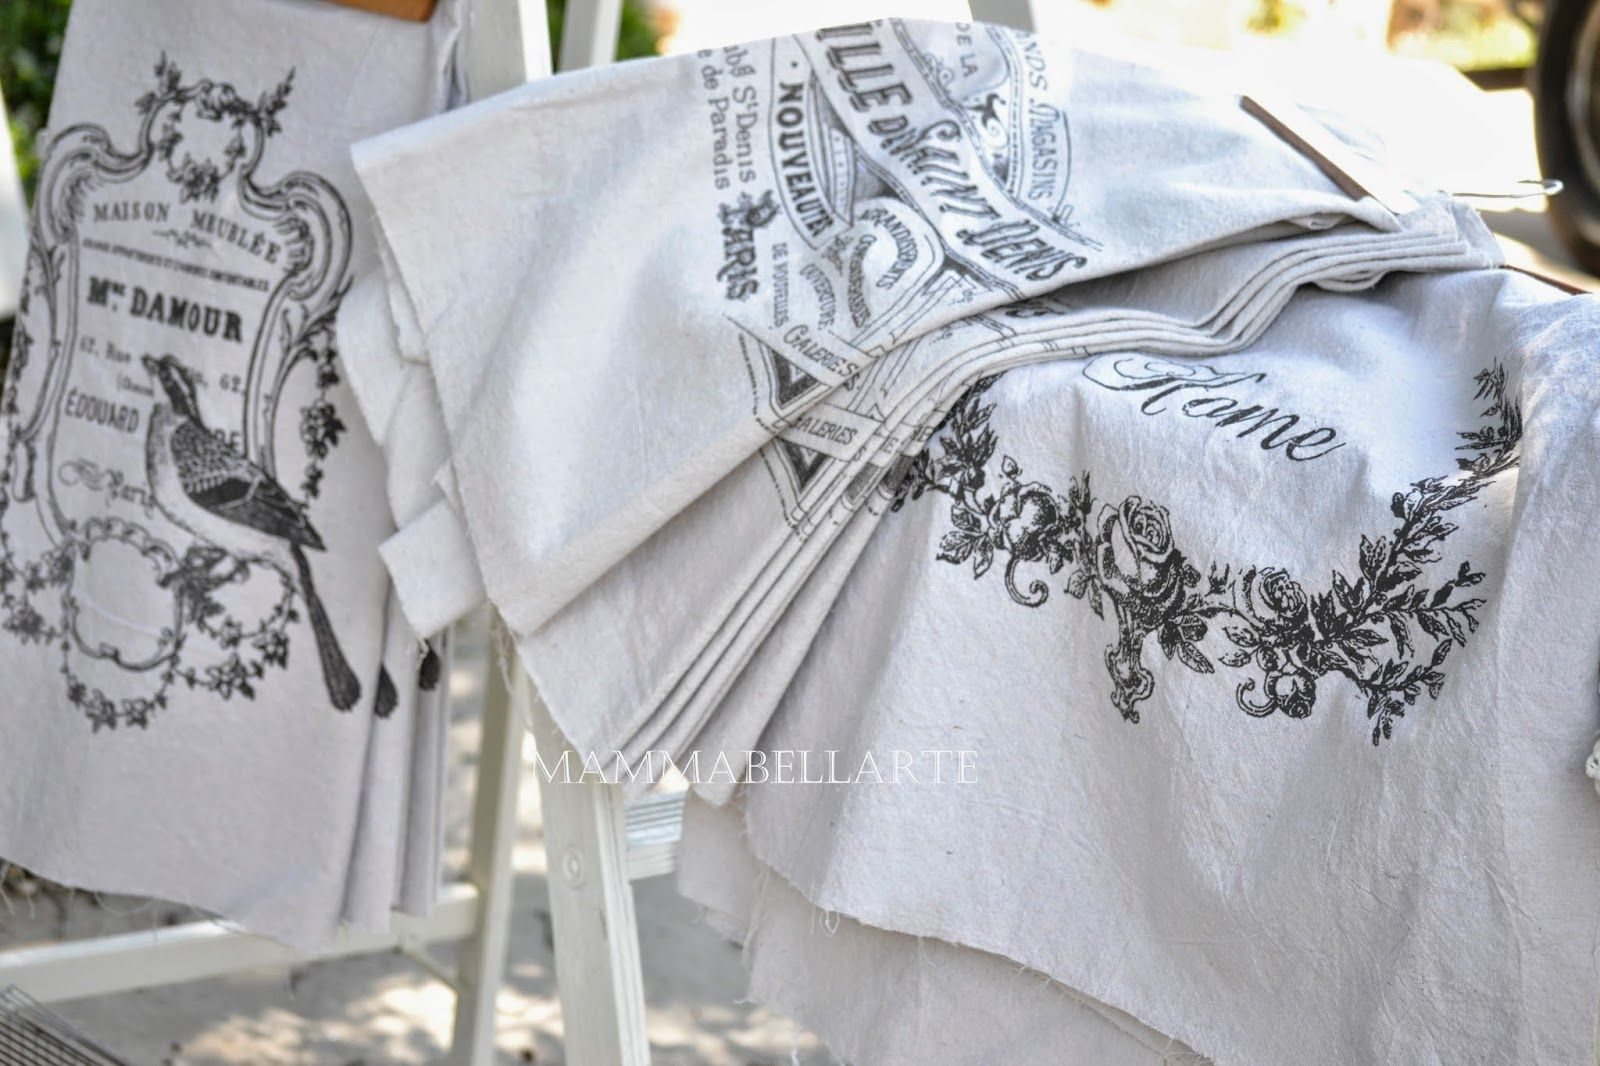 Impresion En Cojines Mammabellarte Fabric Prints Birds French Labels